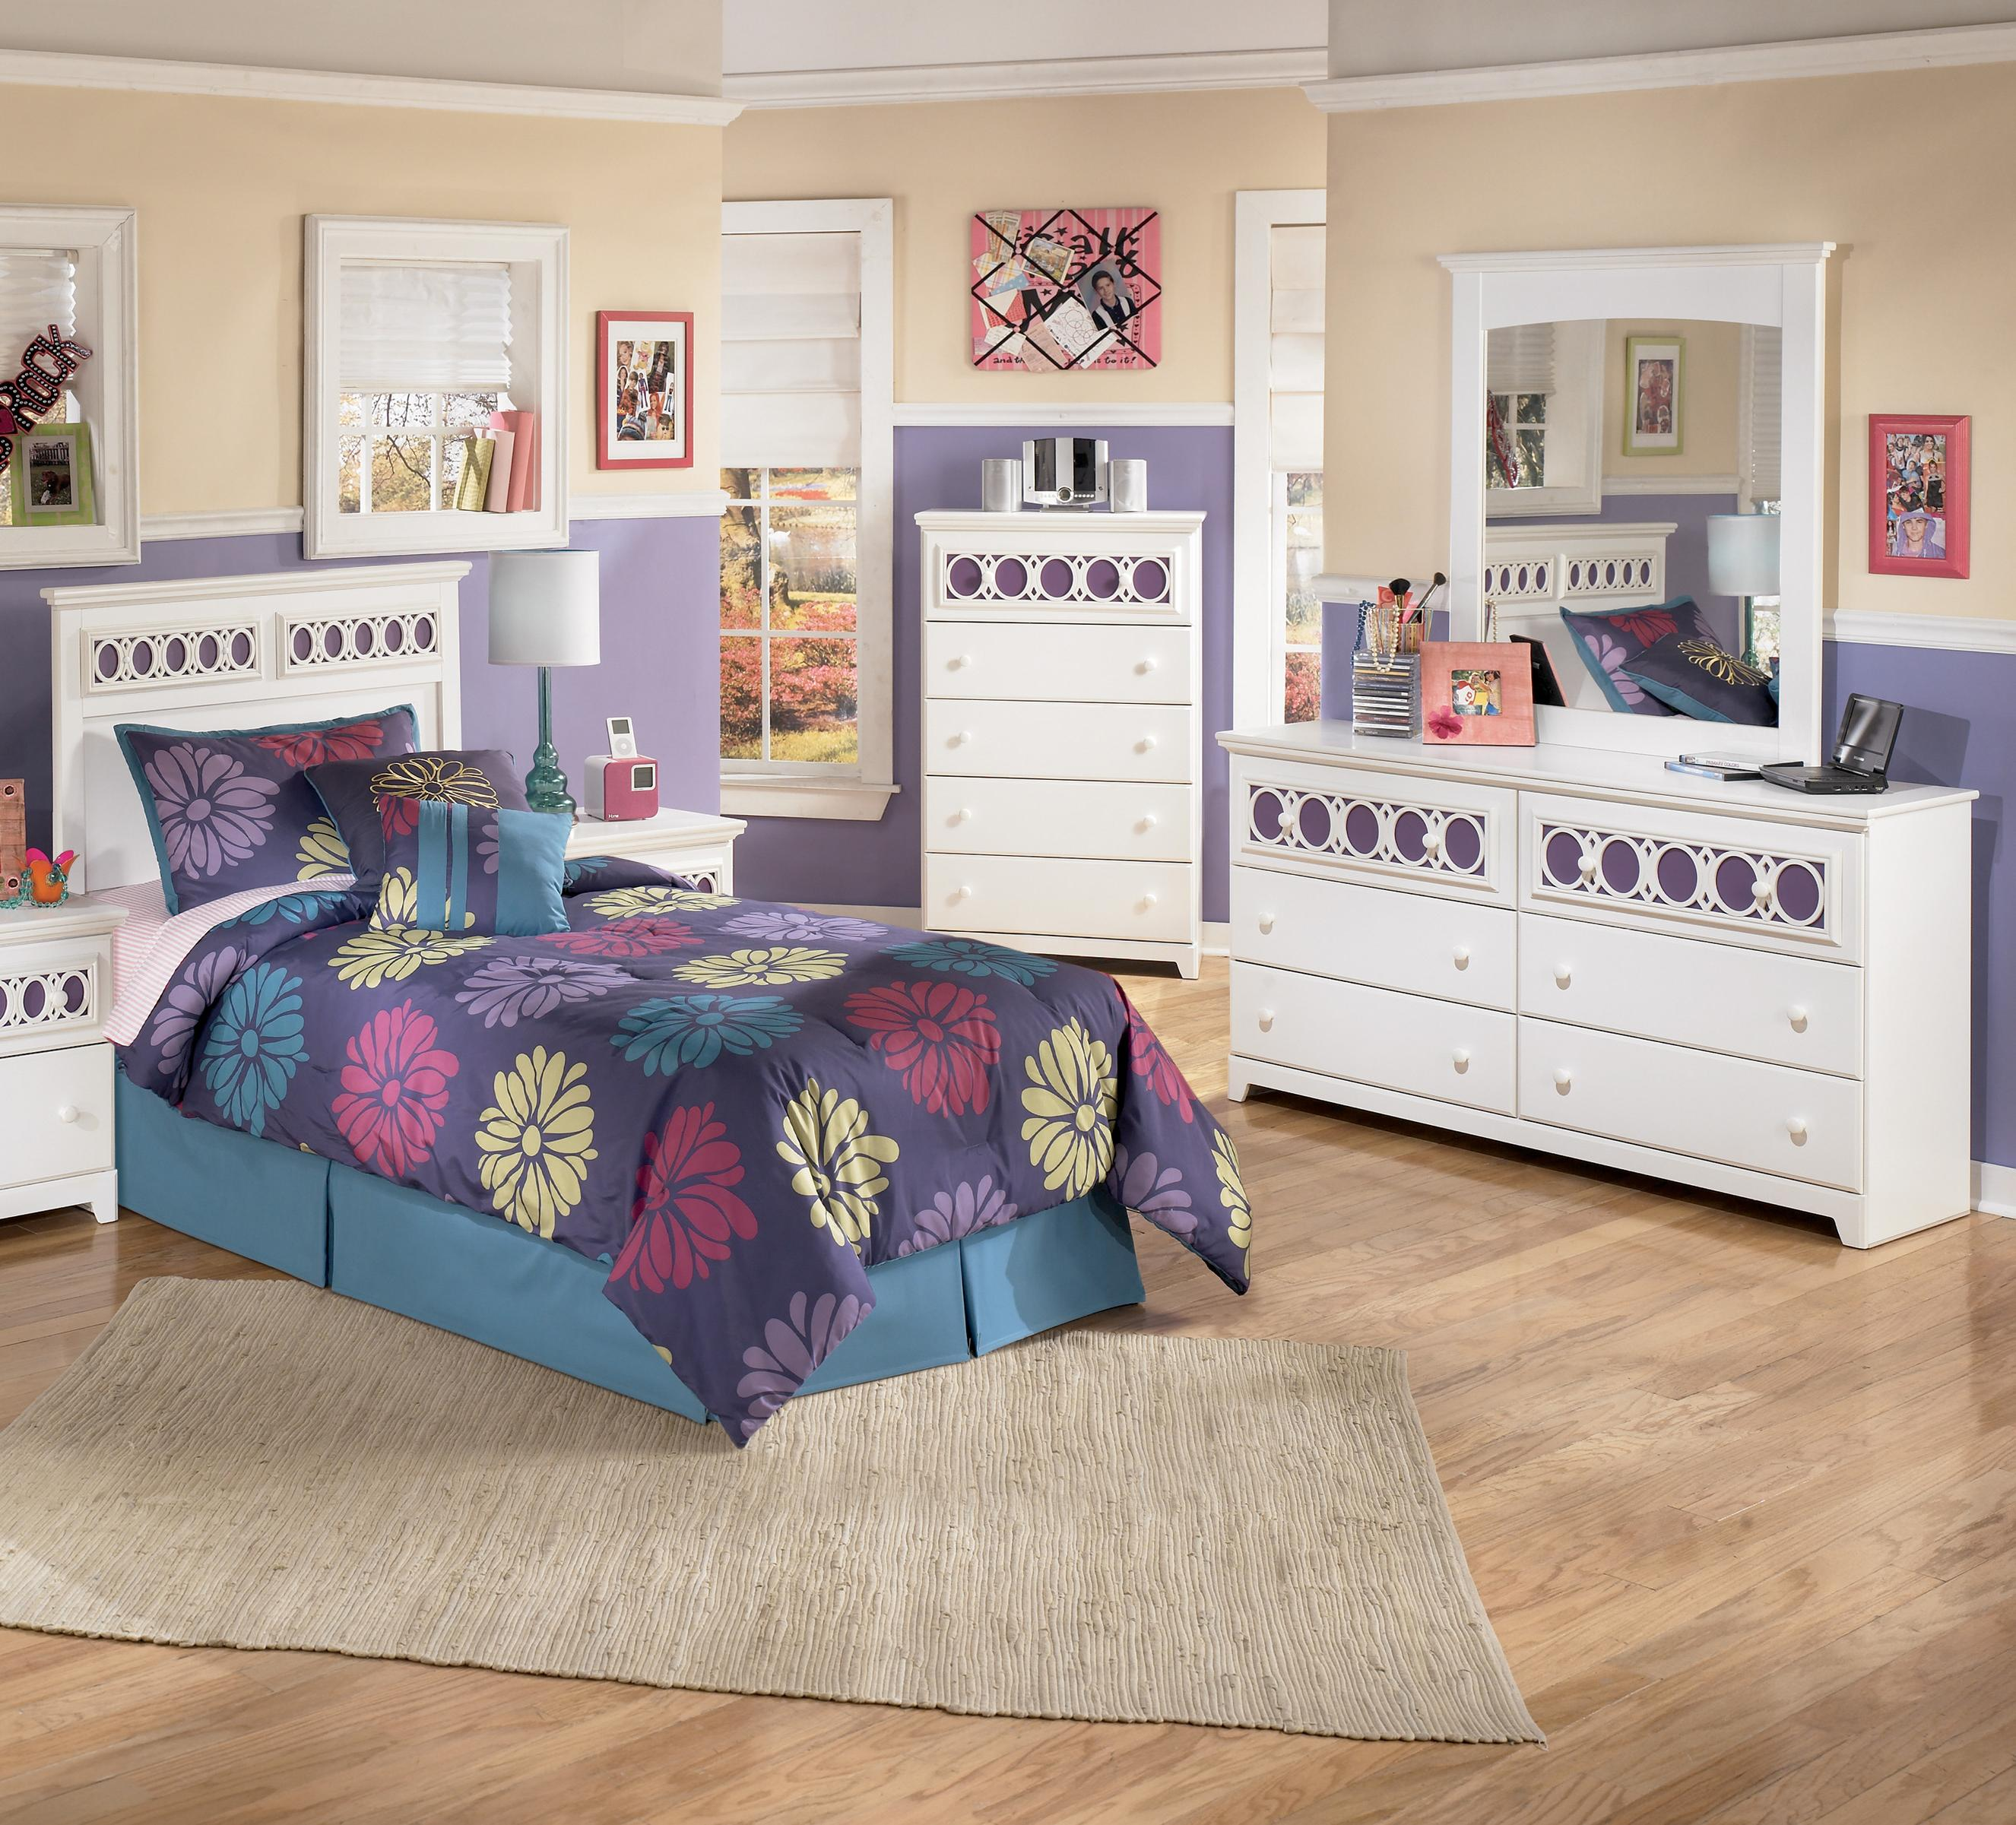 Signature Design by Ashley Zayley 3 Piece Twin Bedroom Group - Item Number: B131 T HB 3 Piece